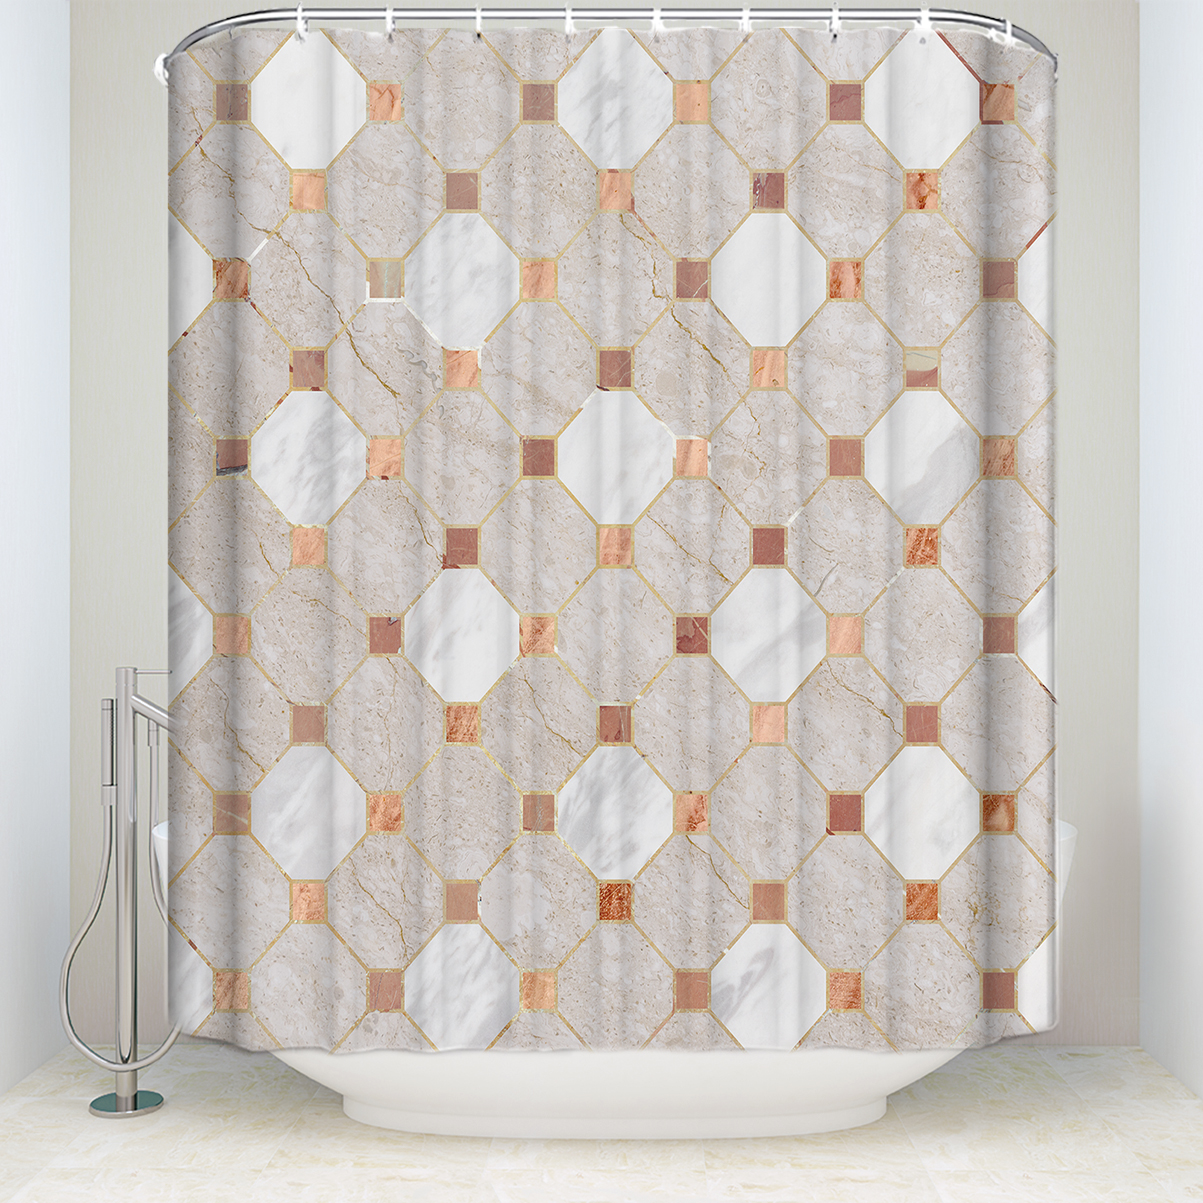 Bathroom Products Buy Cheap New Waterproof Shower Curtain With 12 Hooks Mosaic Printed Bathroom Polyester Decorative Shower Curtain Hooks#g36 Home & Garden